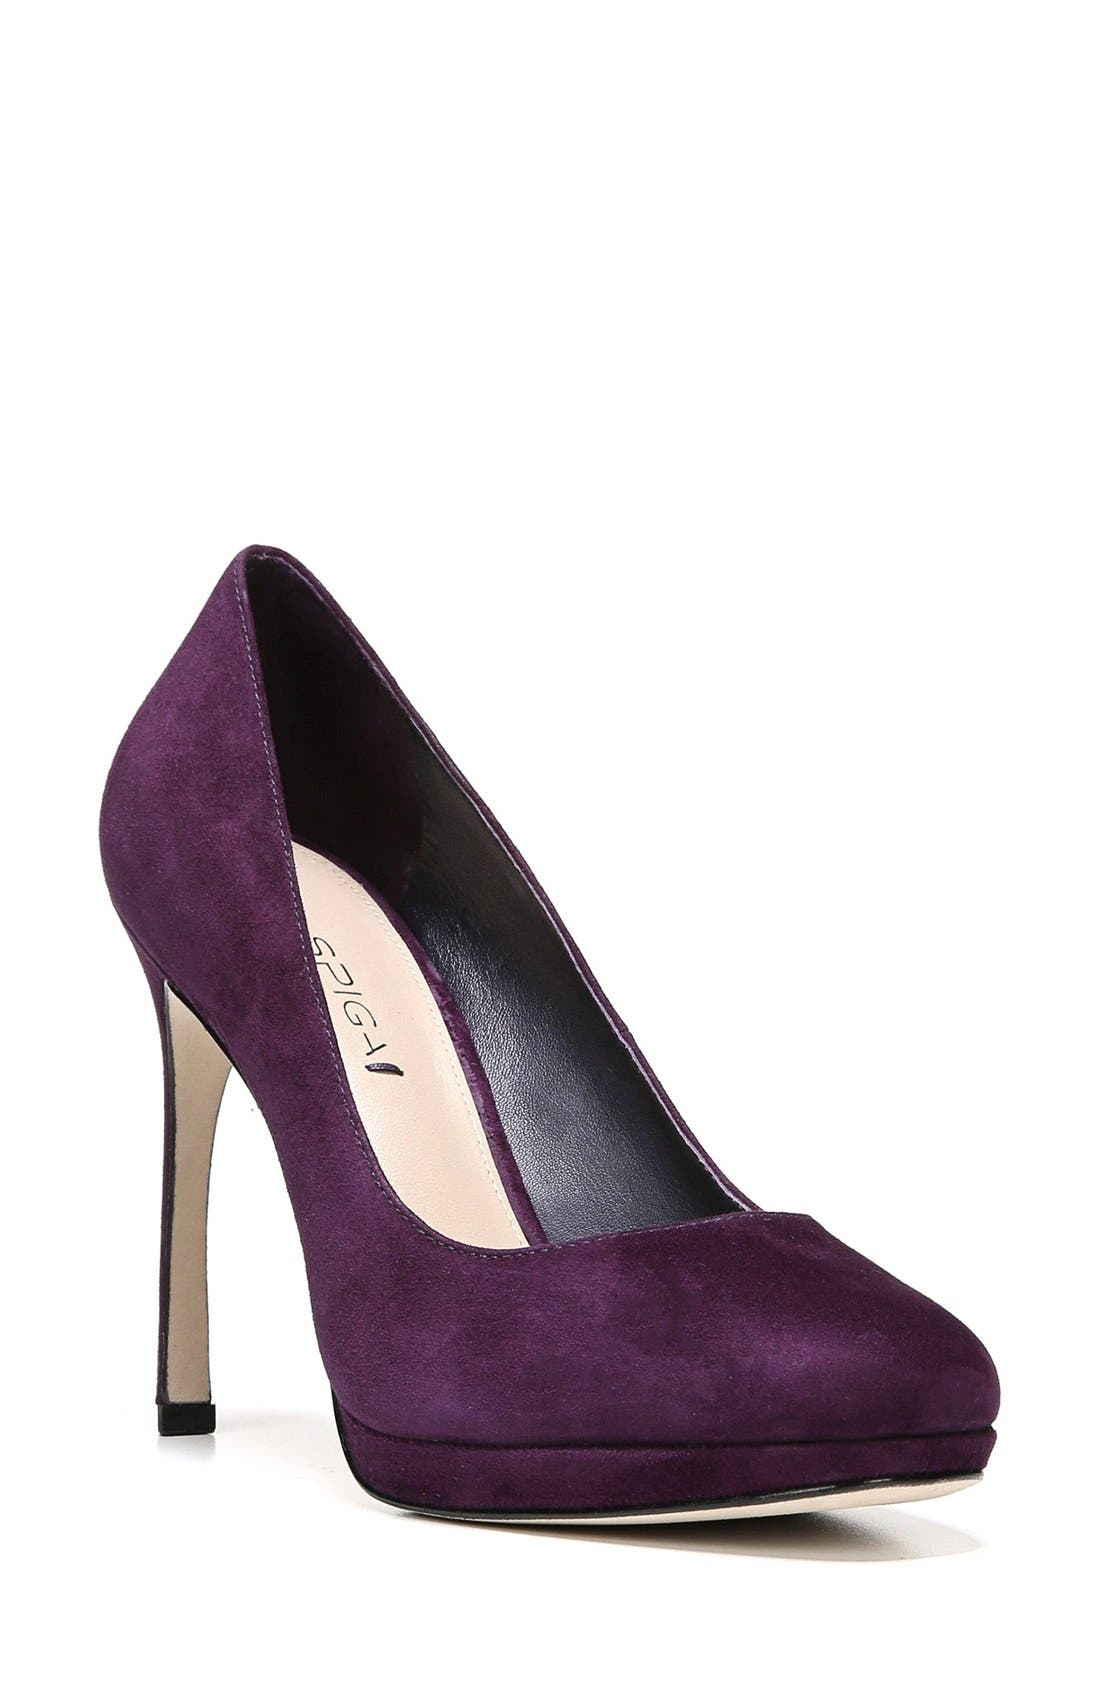 Main Image - Via Spiga 'Siena' Platform Pump (Women)